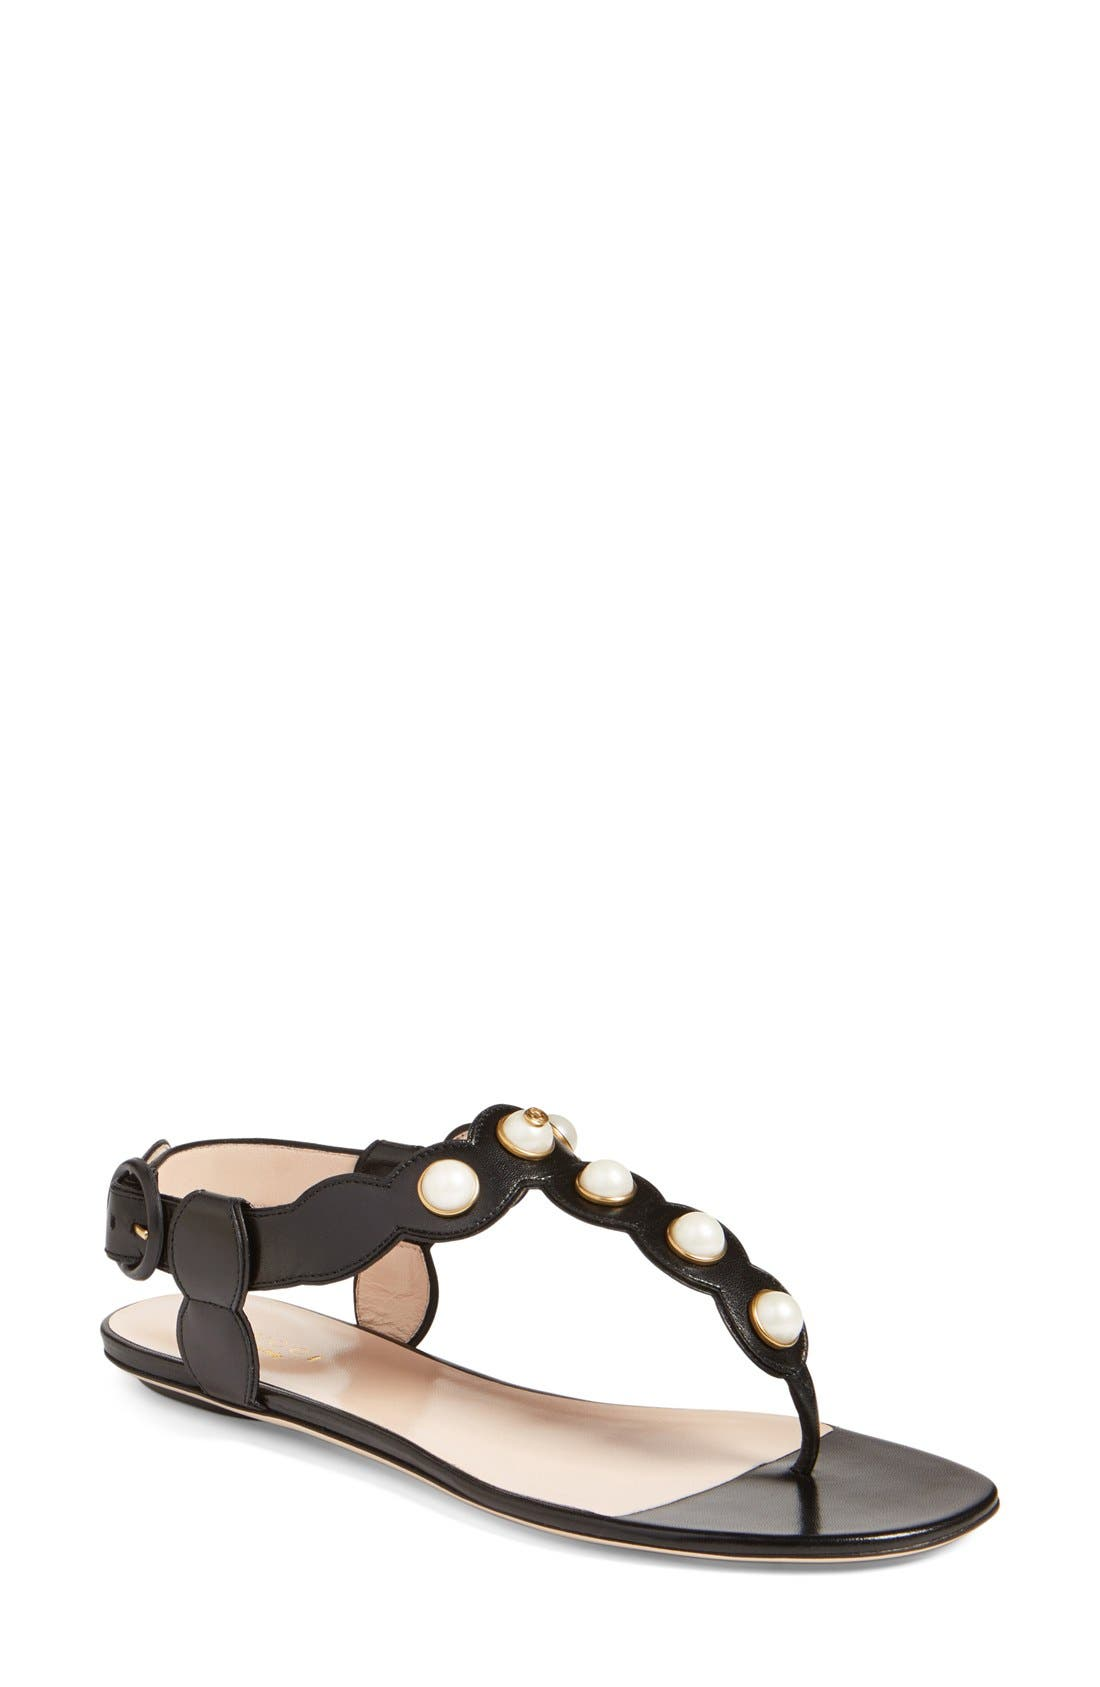 GUCCI 'Willow' Thong Sandal